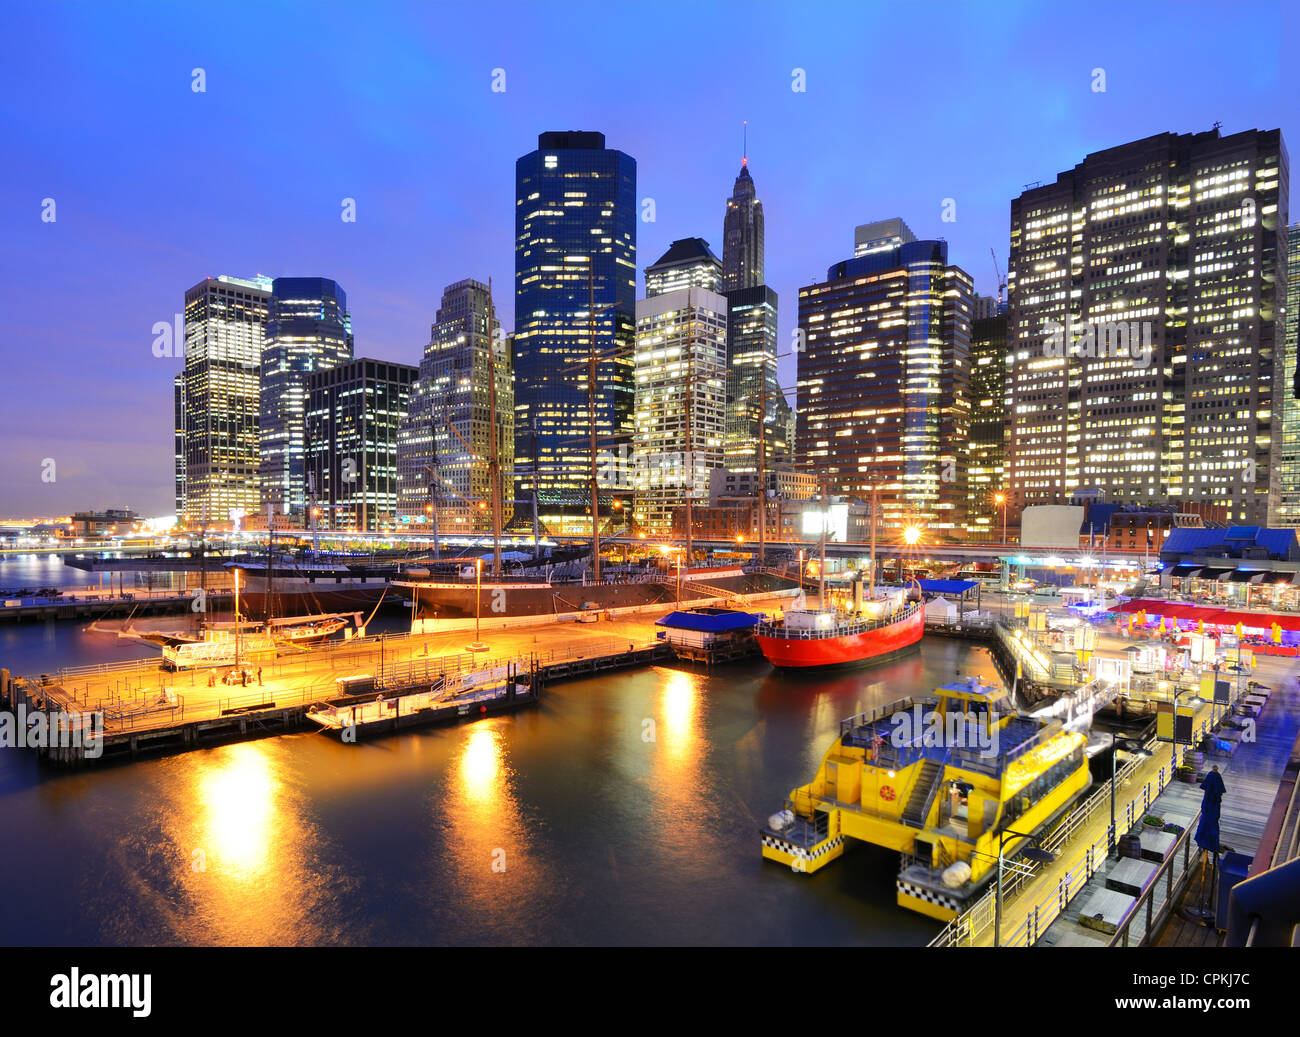 The historic district of South Street Seaport juxtaposed against the imposing Financial District skyscrapers. - Stock Image